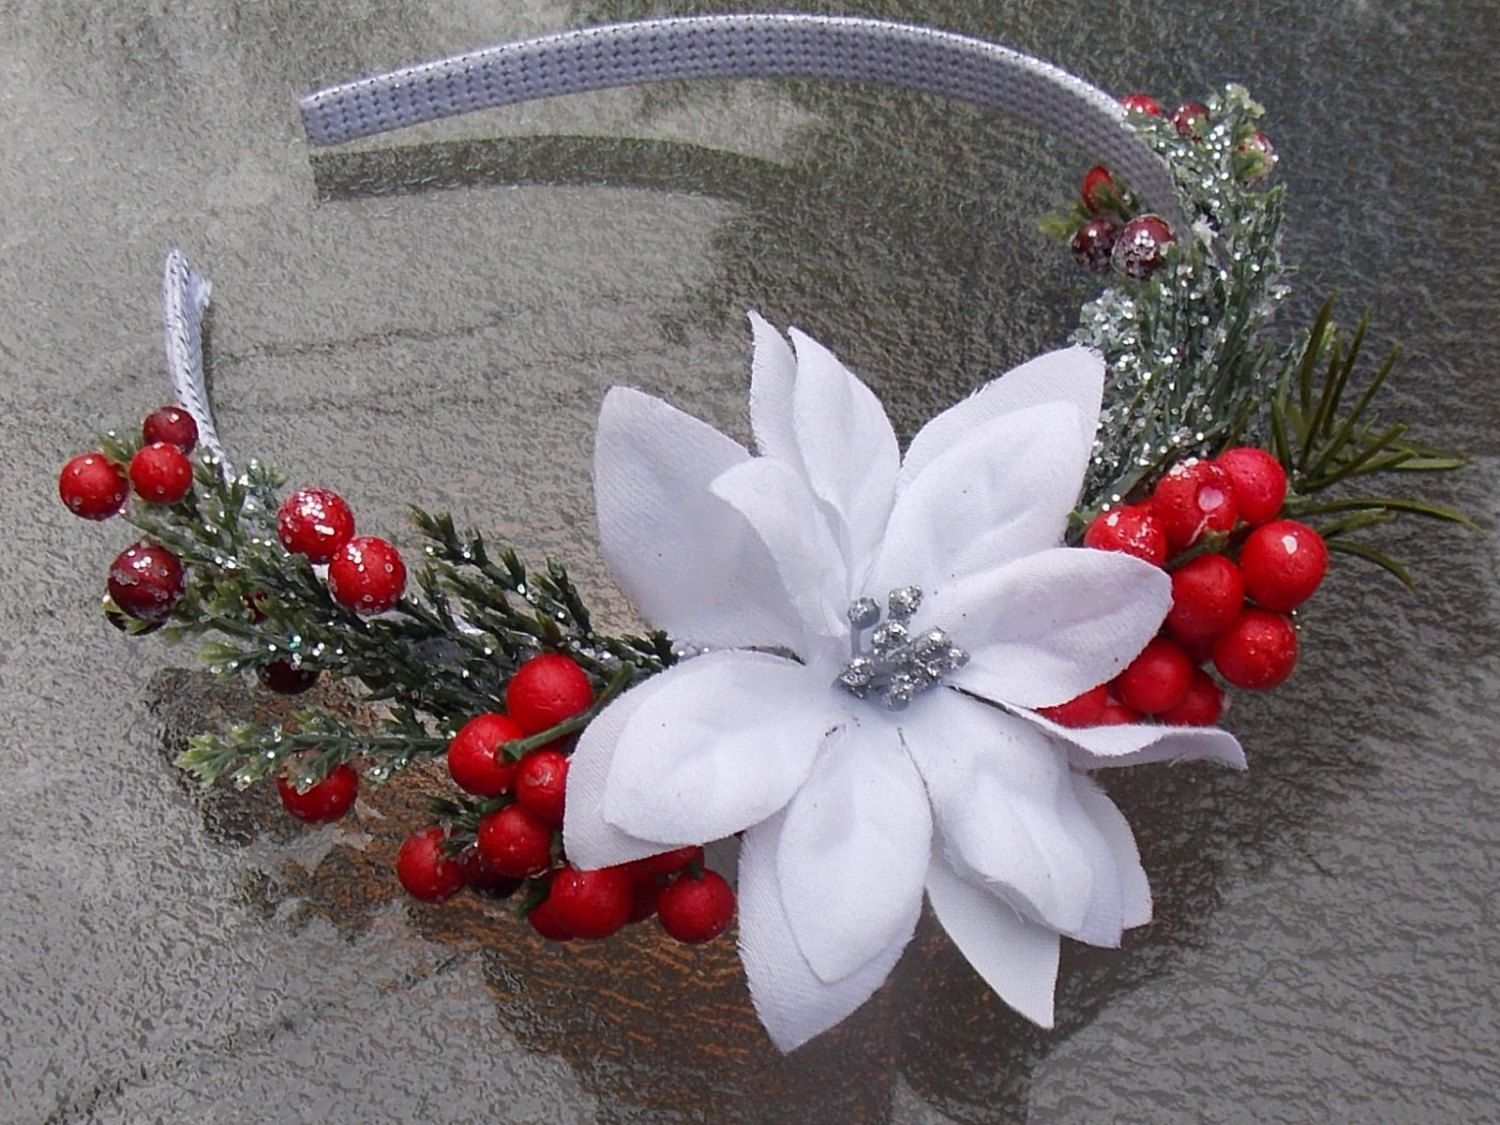 White Poinsettia Flower Headband With Evergreen Sprigs And Red Berries Poinsettia Holiday Headband Christmas Flower Fascinator A11 Holiday Headbands Diy Christmas Sweater Christmas Headband Diy